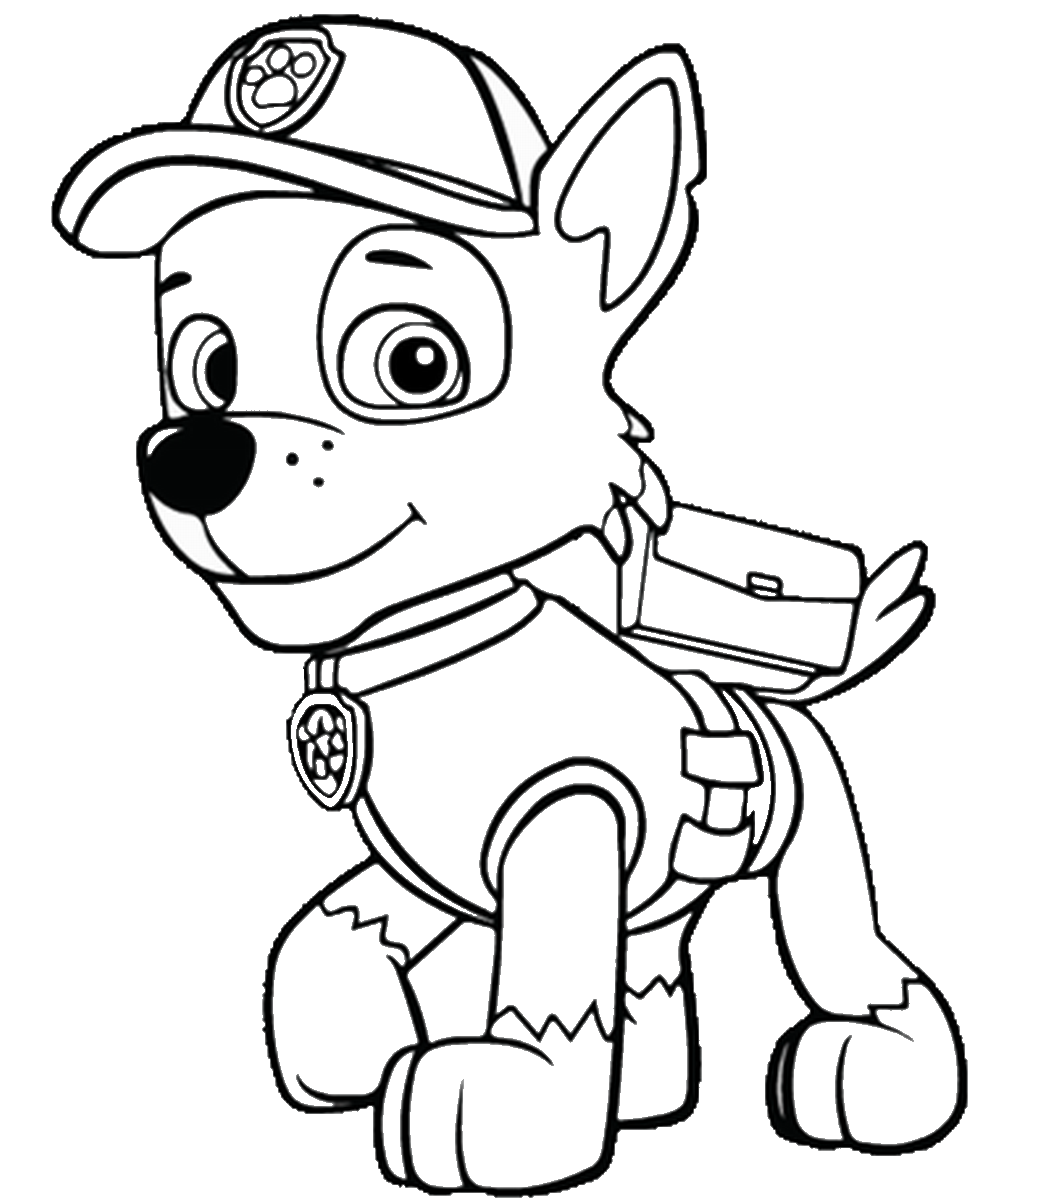 Printable Coloring Pages Of Paw Patrol : Paw patrol printable coloring pages print